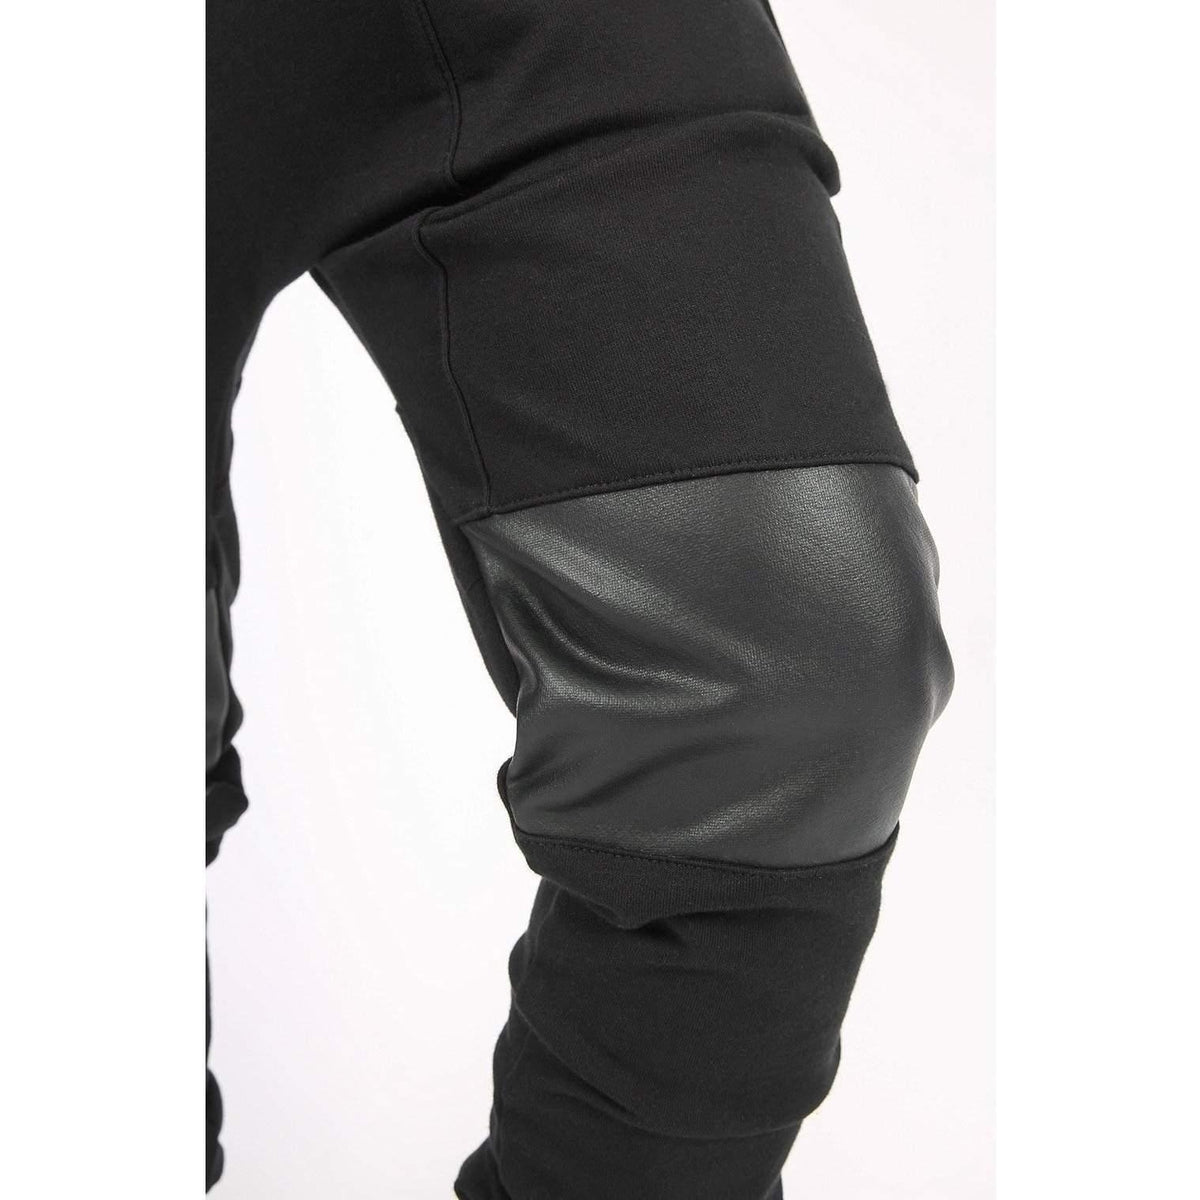 WIDOW RESURRECTION DROP CROTCH UNISEX PANTS - Salemonster